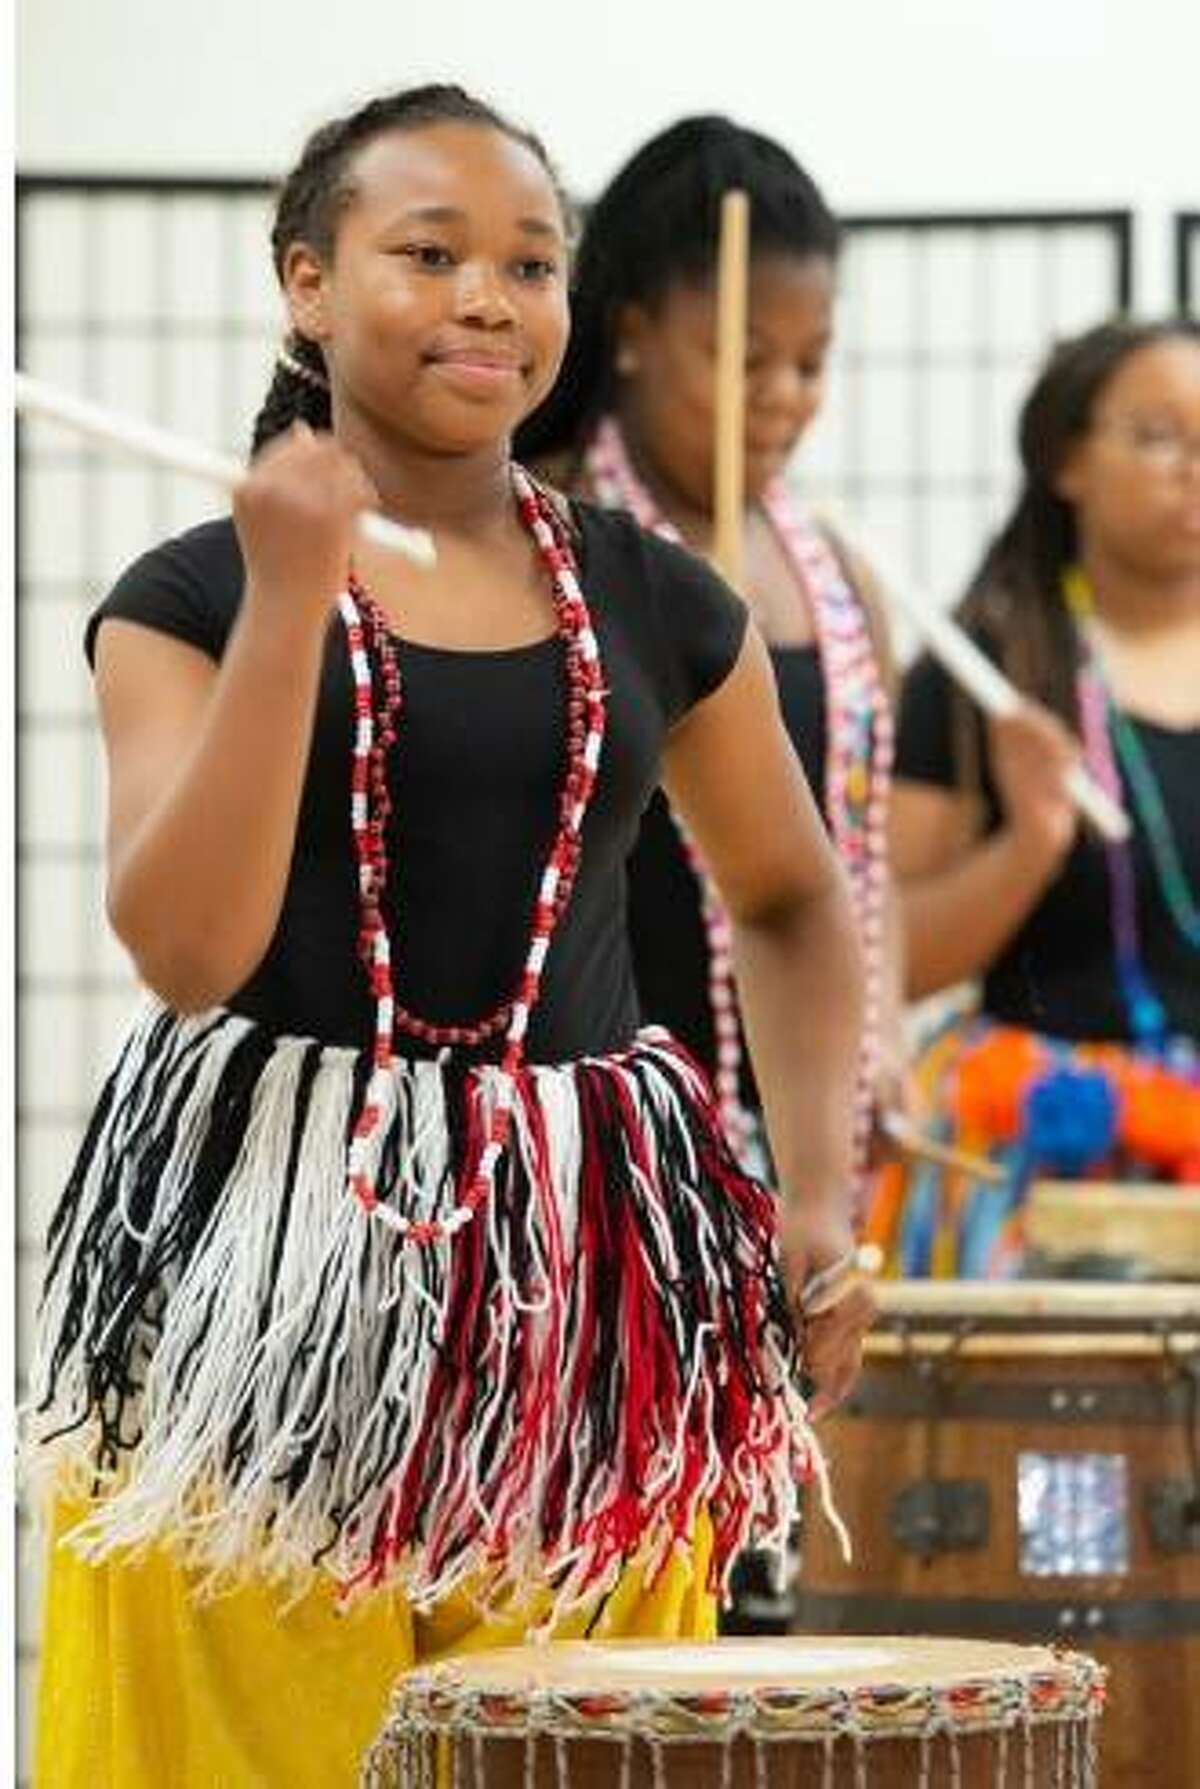 A student performs percussion in the SIUE East St. Louis Center for the Performing Arts After School program.